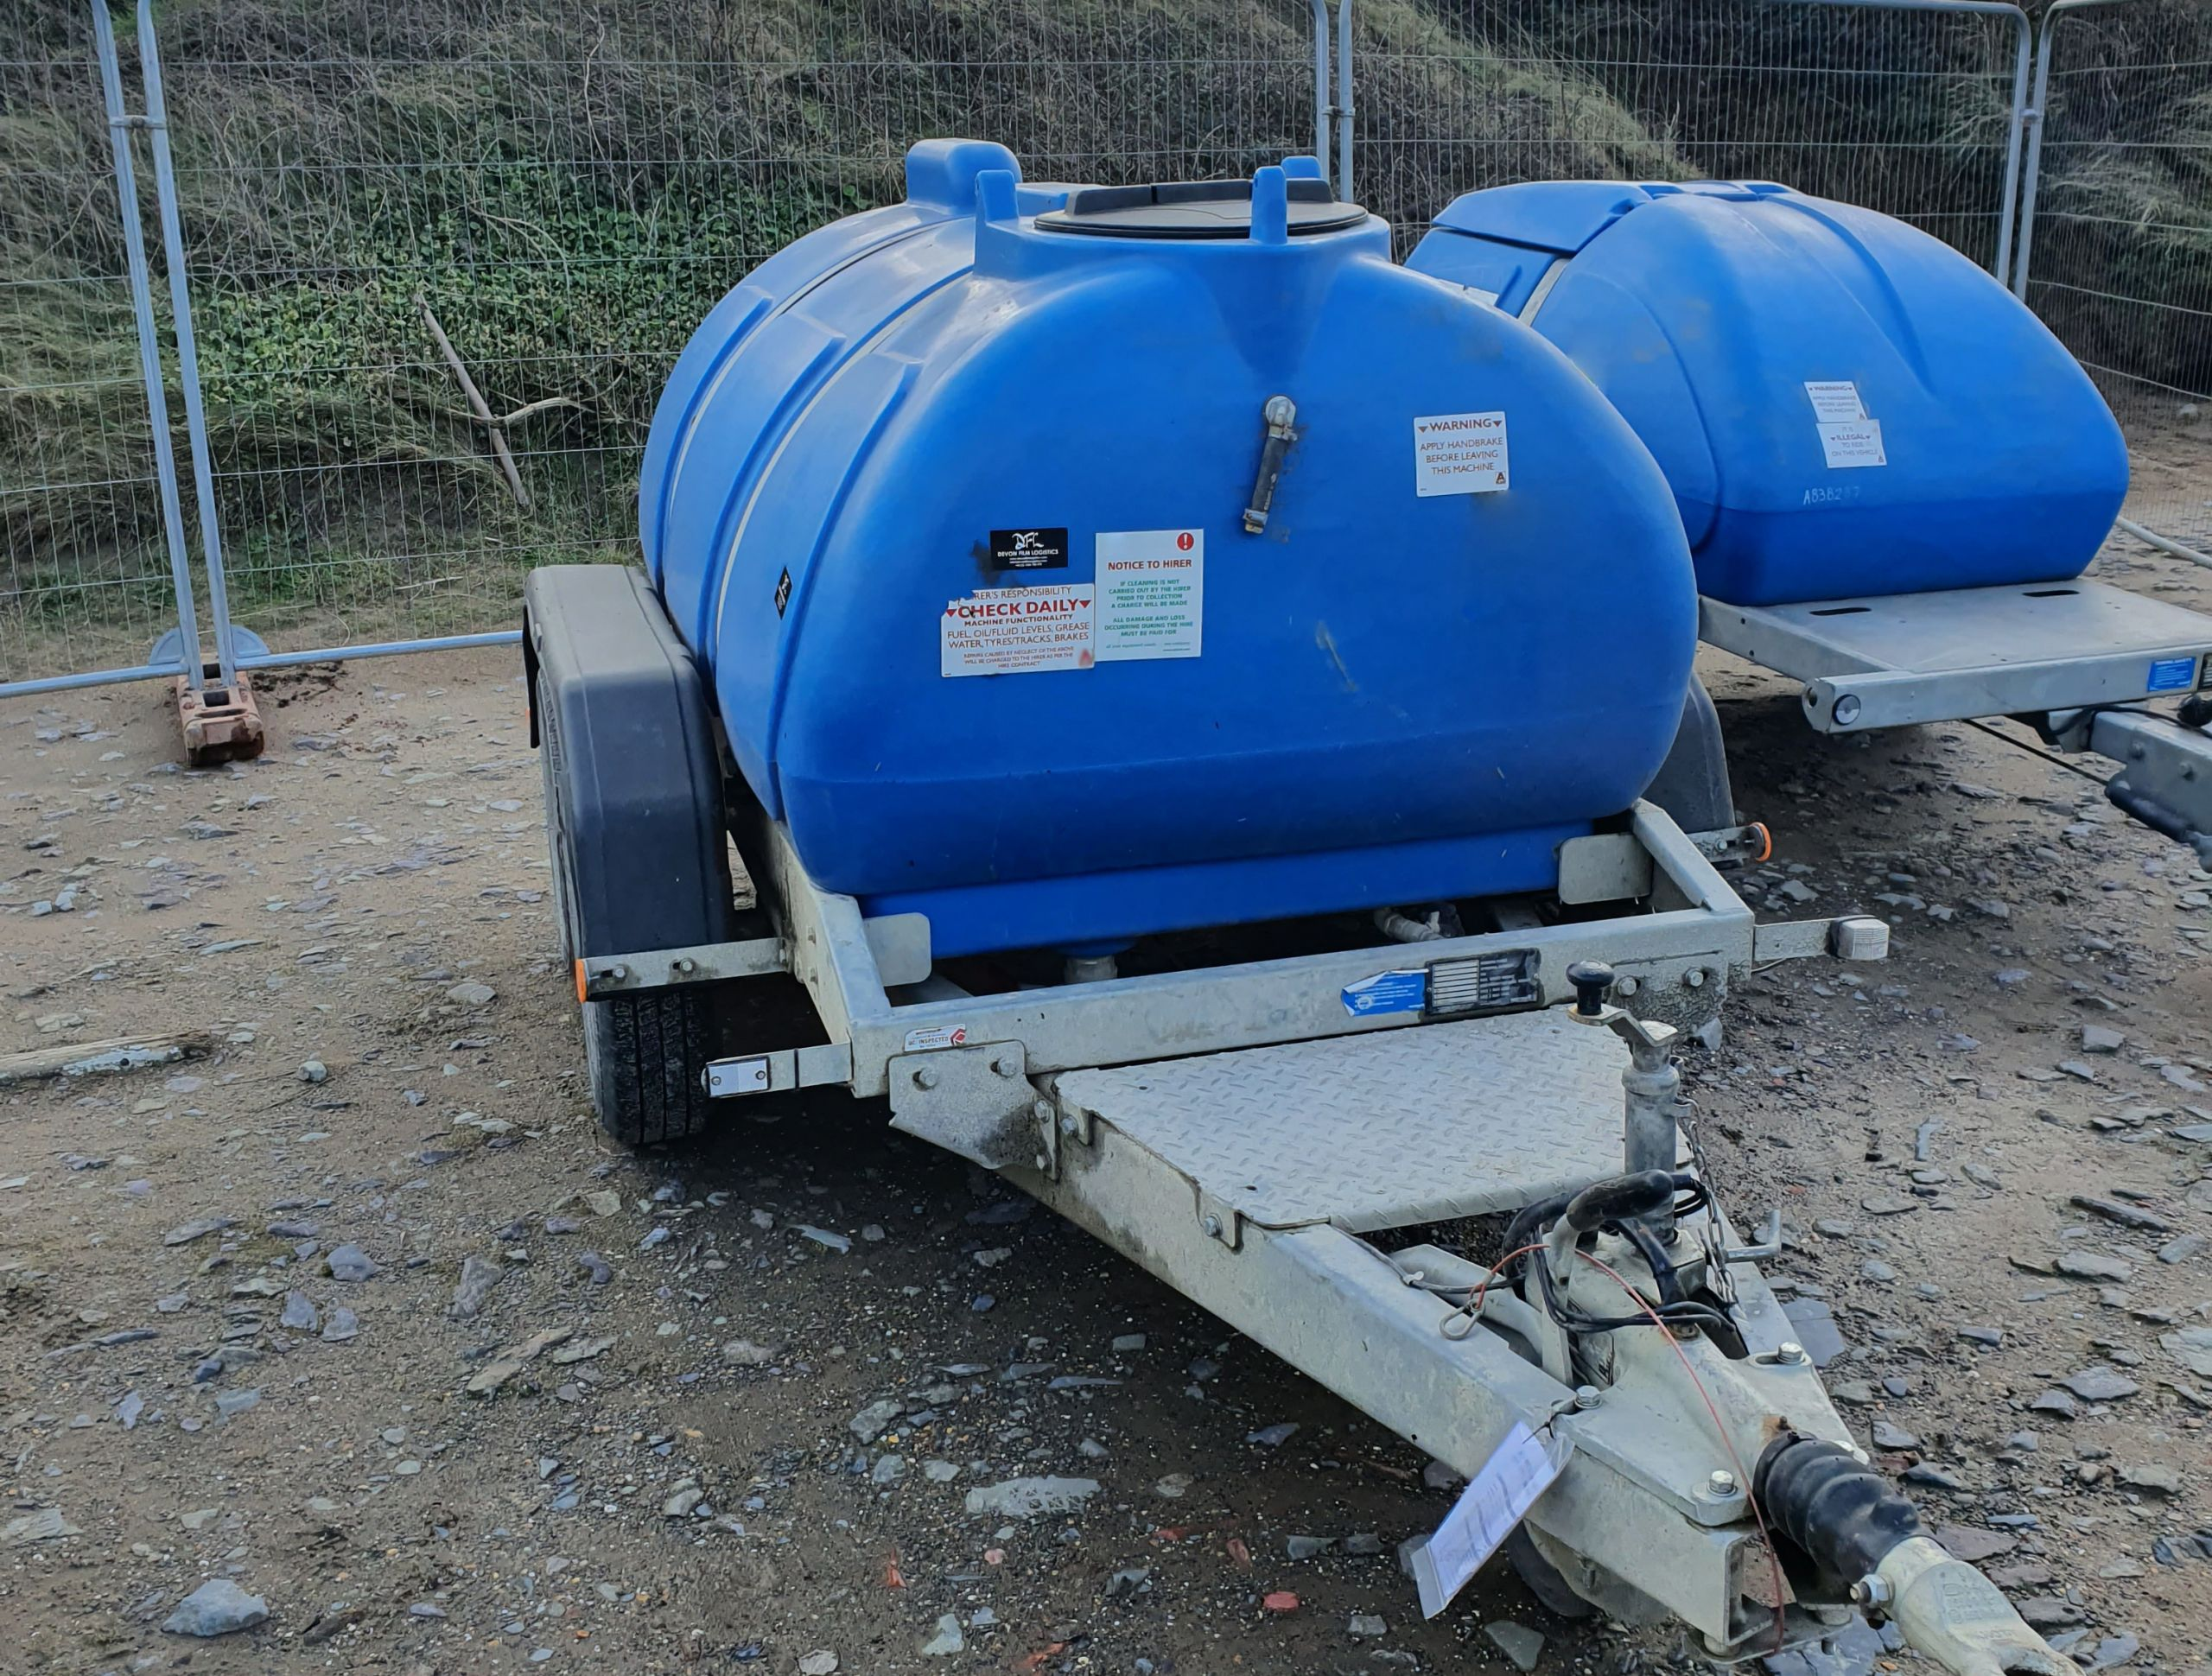 Towable Water Bowser On Location